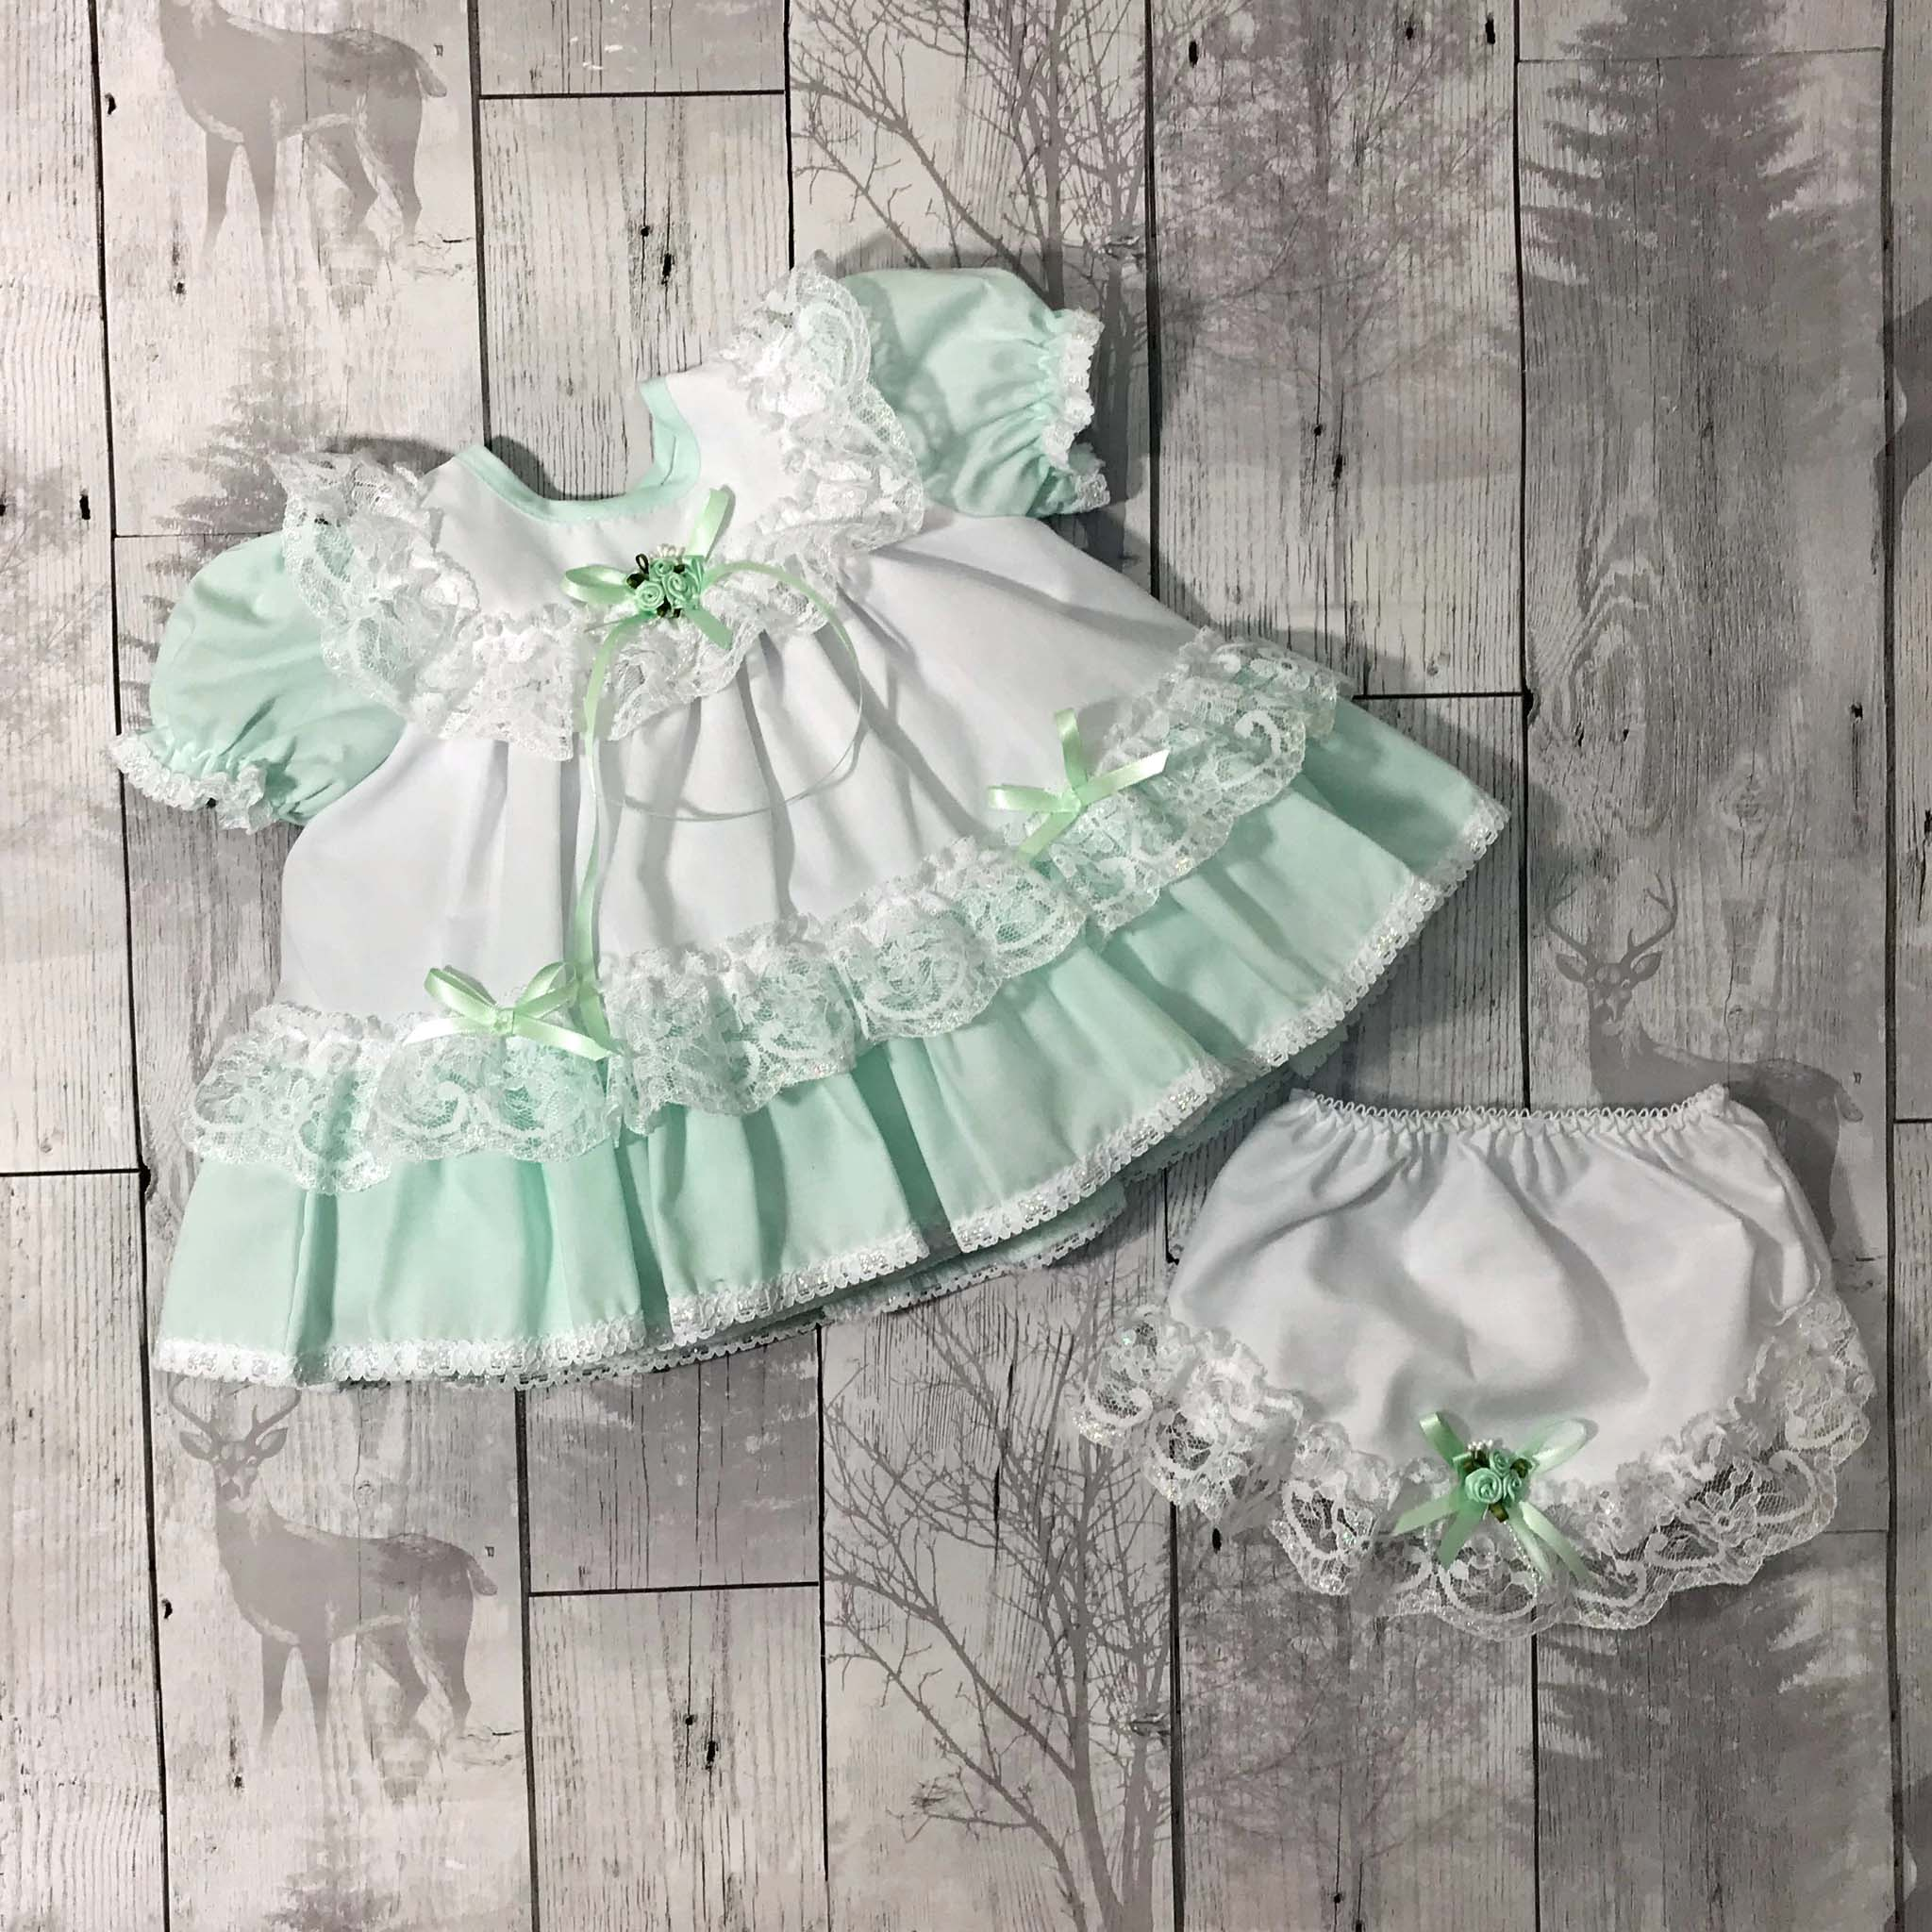 baby girlmint green summer dress